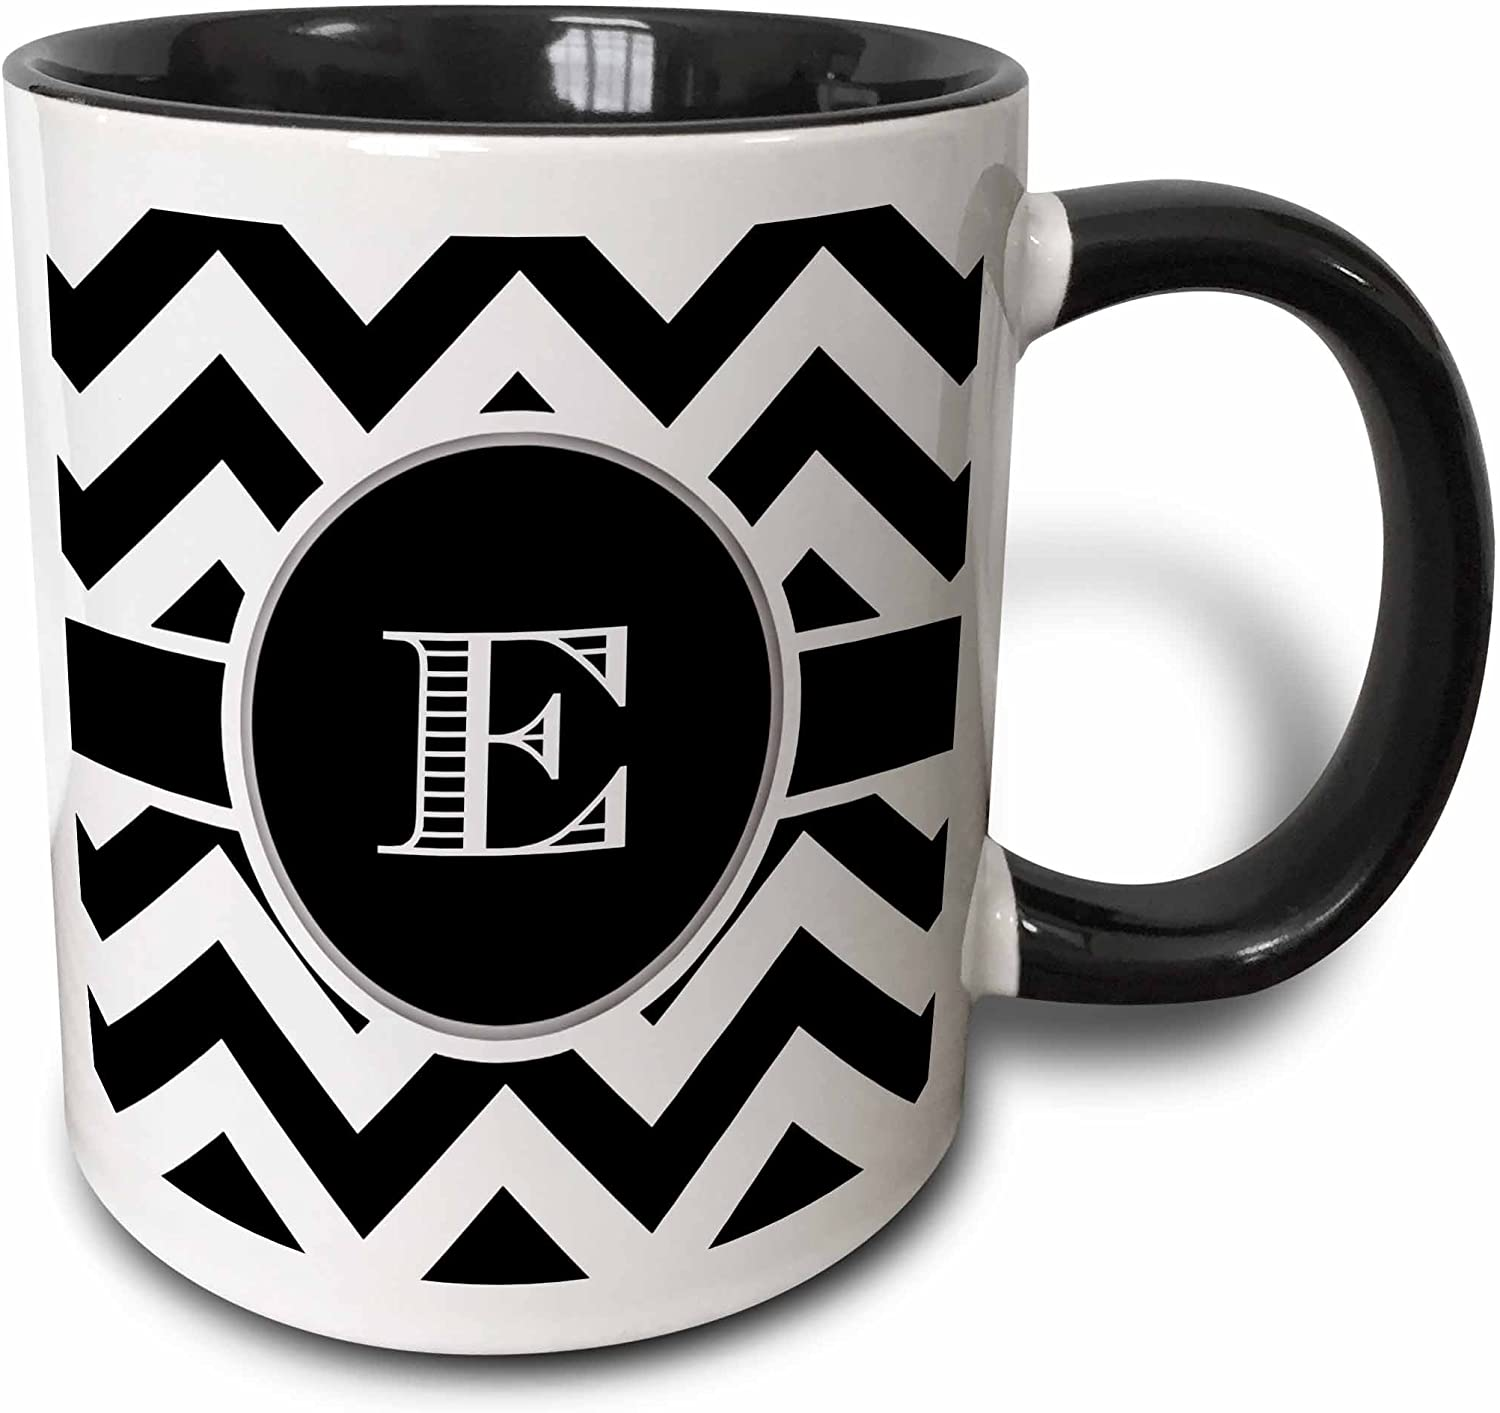 3dRose Black And White Chevron Monogram Initial E Mug, 11 oz